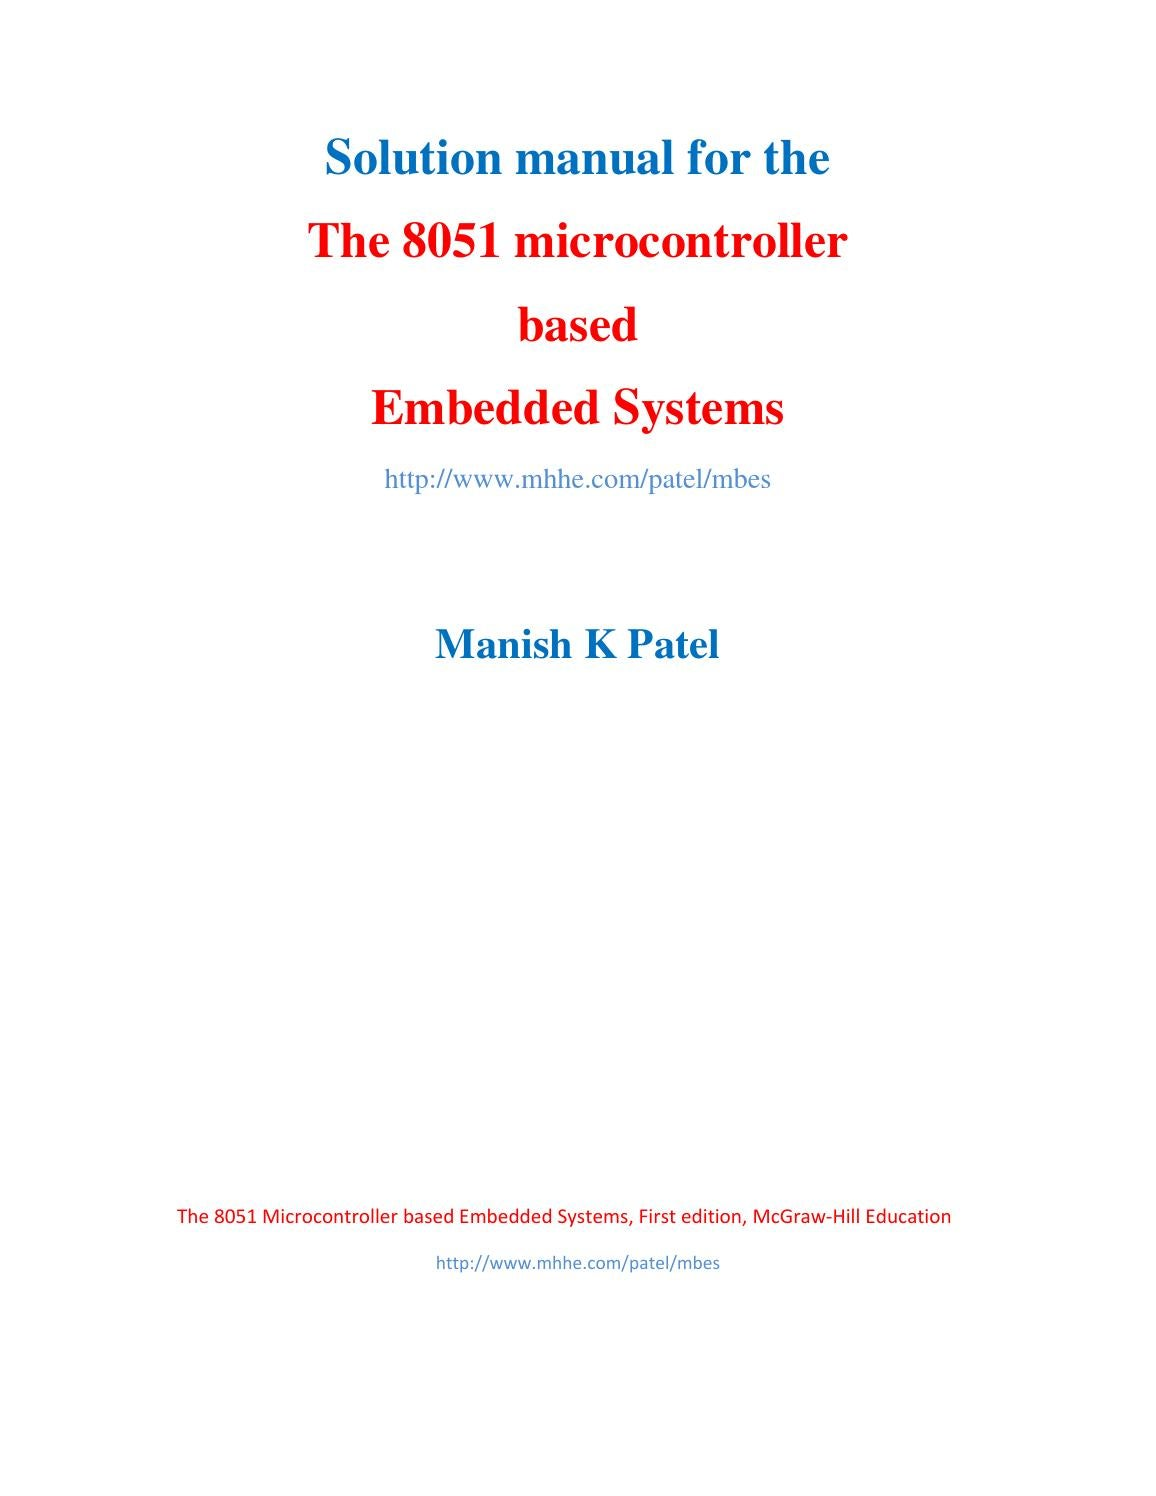 8051 Microcontroller Based Frequency Counter Auto Electrical Color Sensor Circuit1 Circuit With At89s52 Adc0808 Solution Manual The Embedded